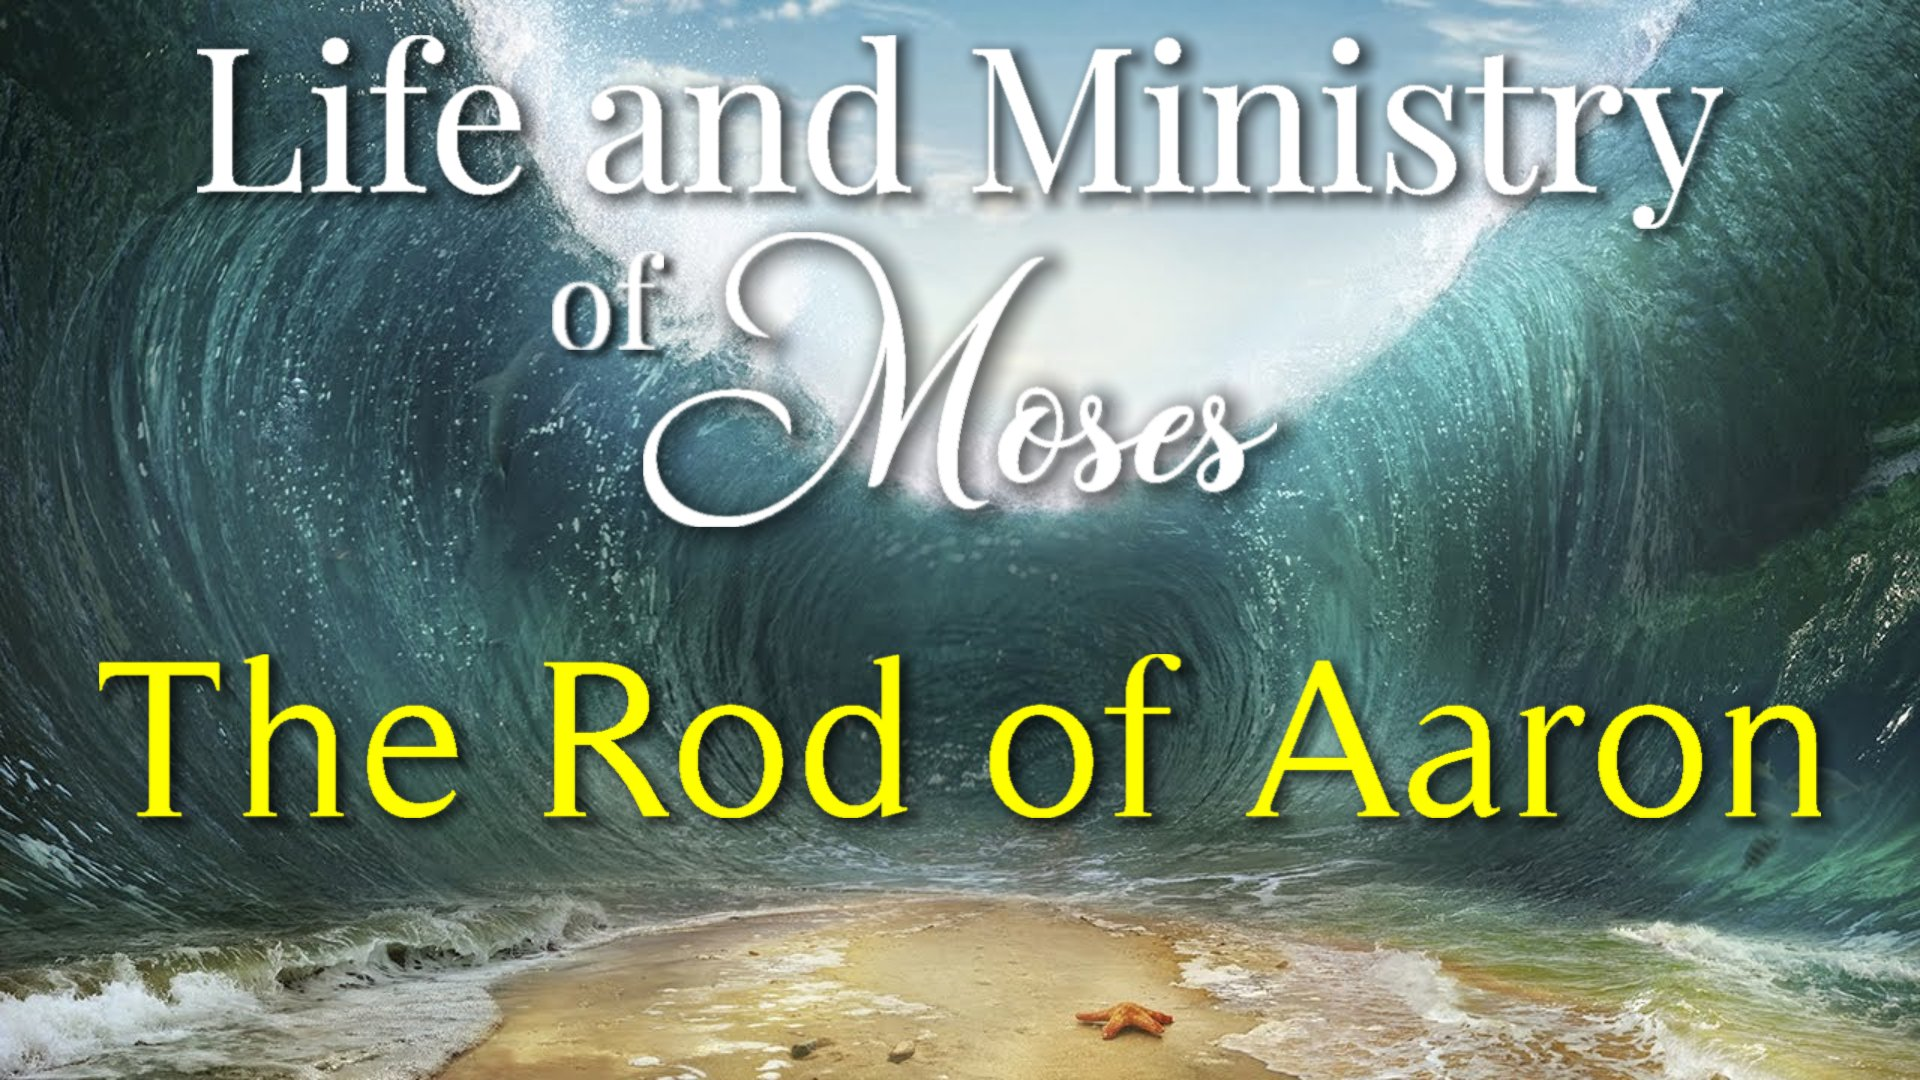 38 The Rod of Aaron